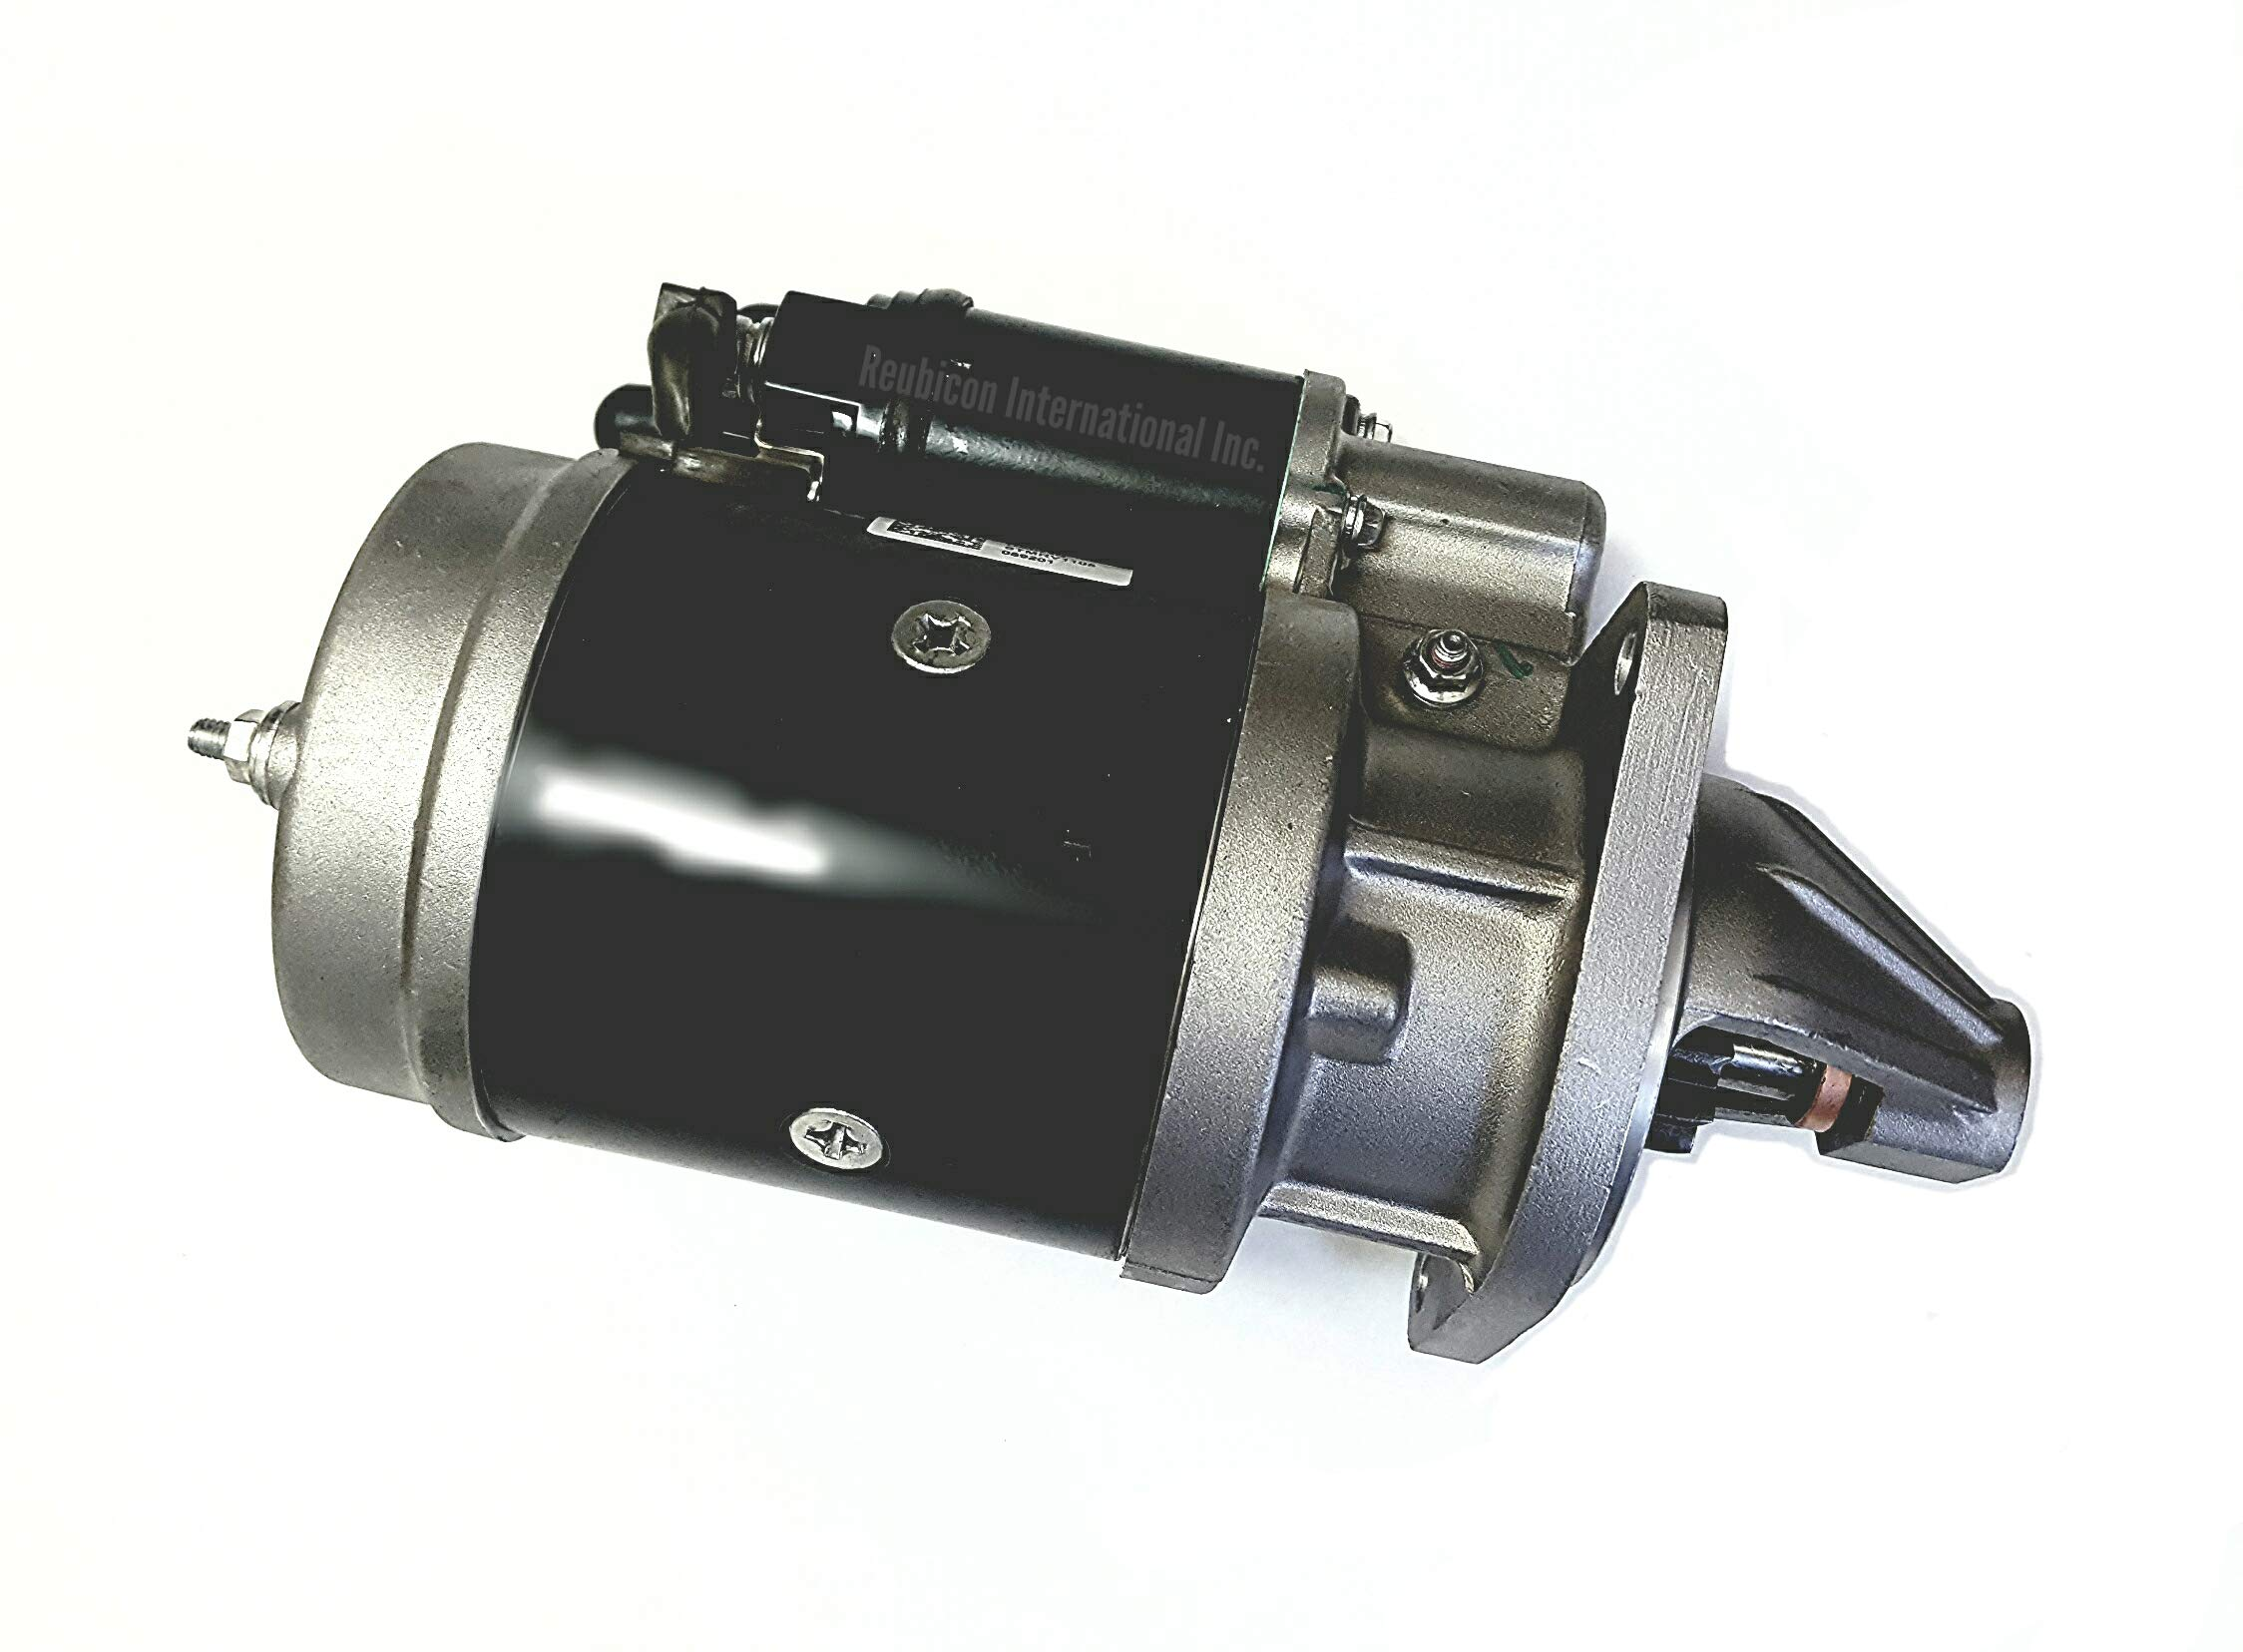 Starter with Solenoid Mahindra C-27 C-35 E-40 450 475 485 575 E350 4500 5500 6000 6500 3500 C4005 4505 5005 5520 6520 7520 3325 3525 3825 4025 4525 5525 6025 6525 4530 5530 6030 6530 7060 8560 2wd-T3 by Replacement Part for Mahindra Tractor